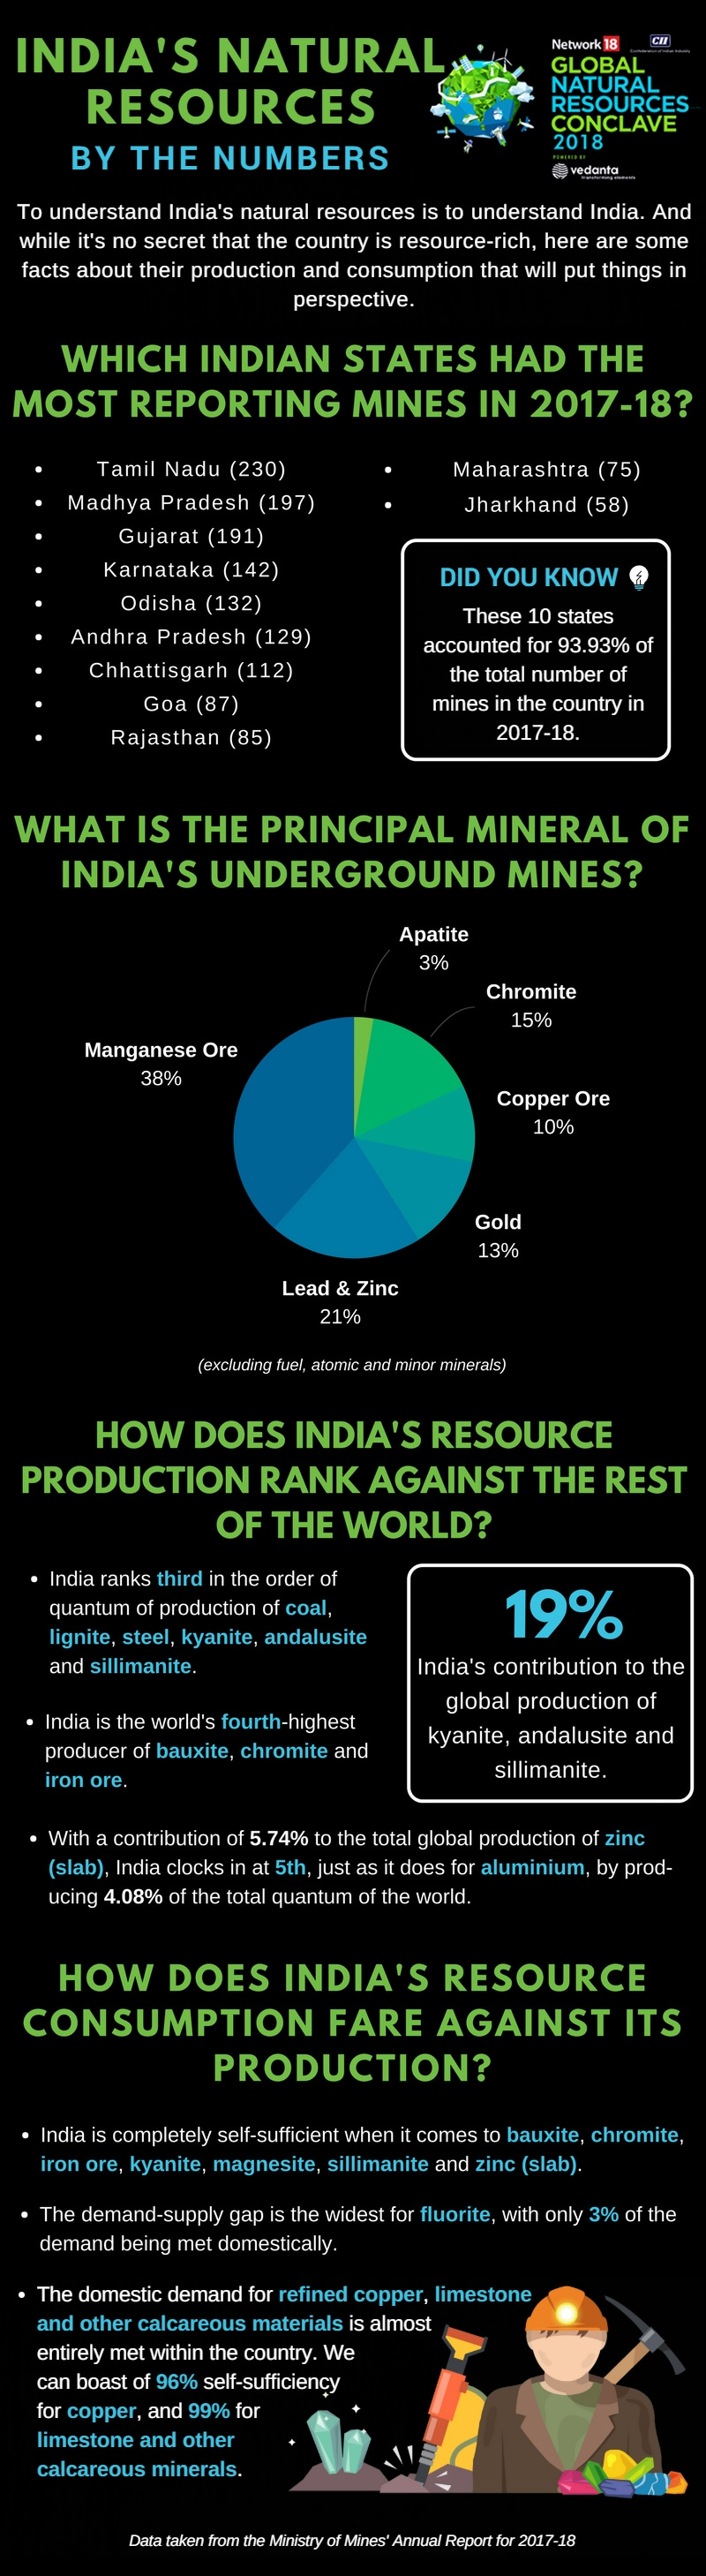 India's Natural Resources by the Numbers v2